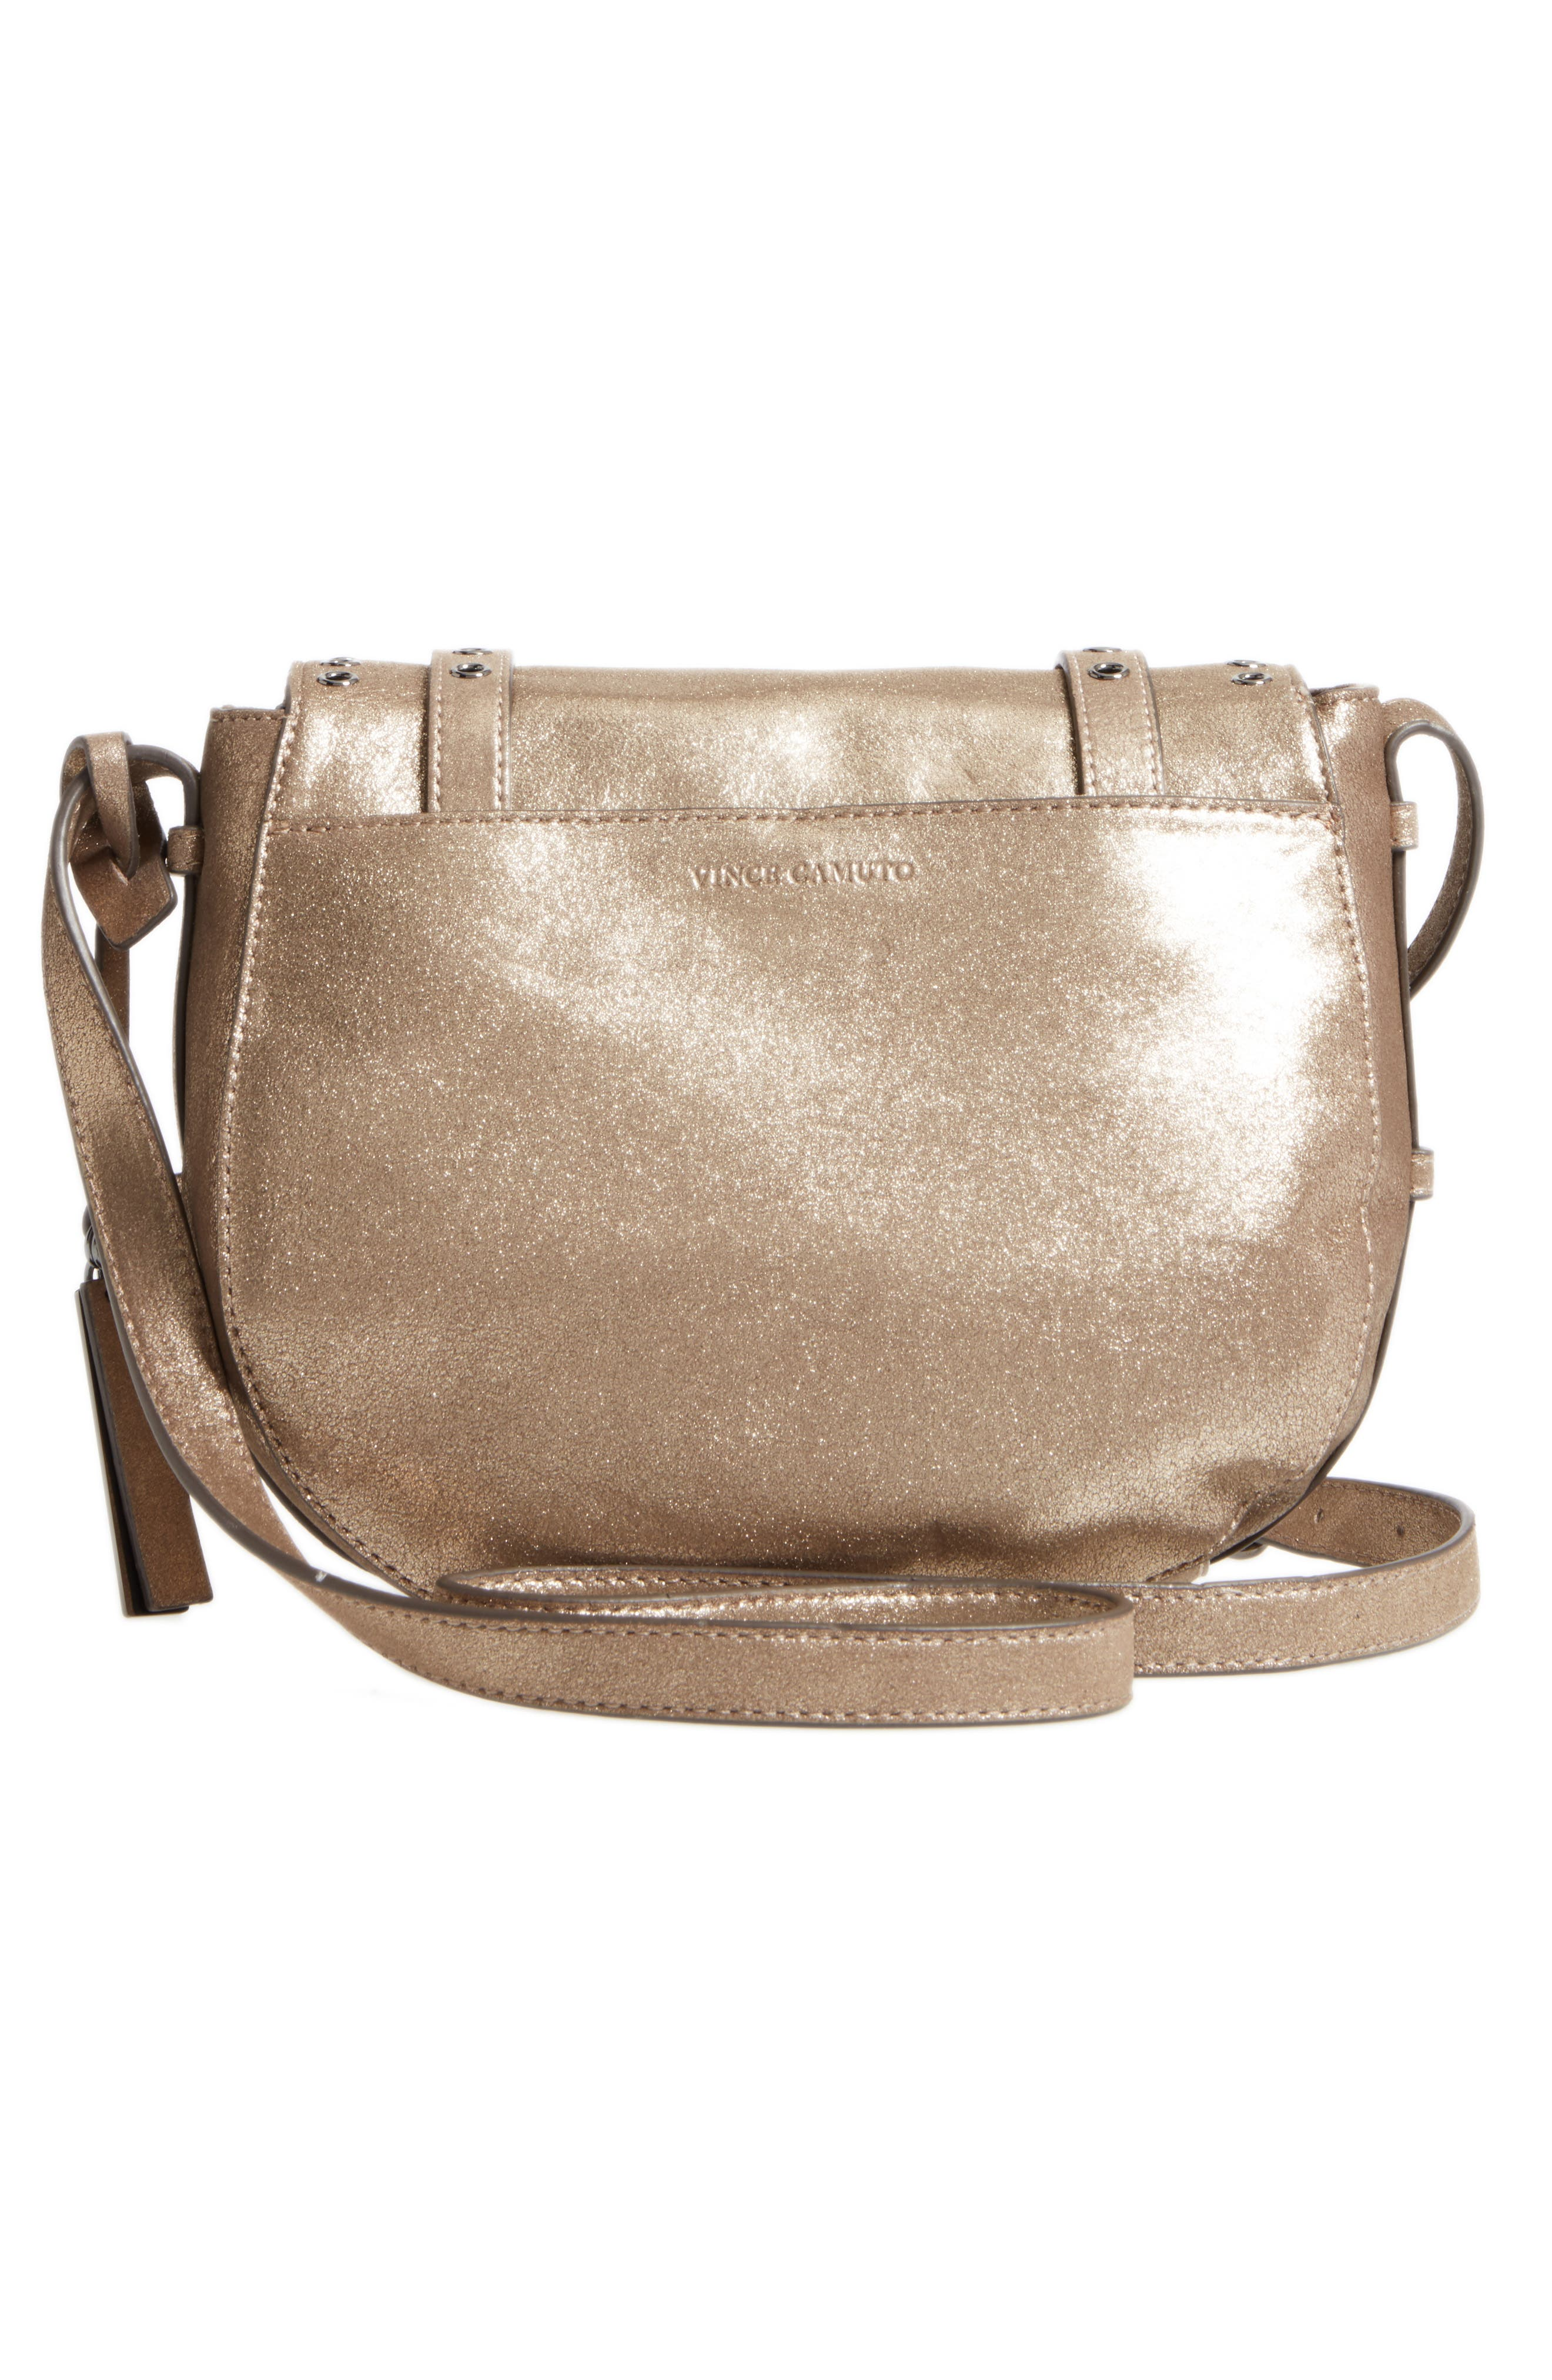 Areli Suede & Leather Crossbody Saddle Bag,                             Alternate thumbnail 3, color,                             710